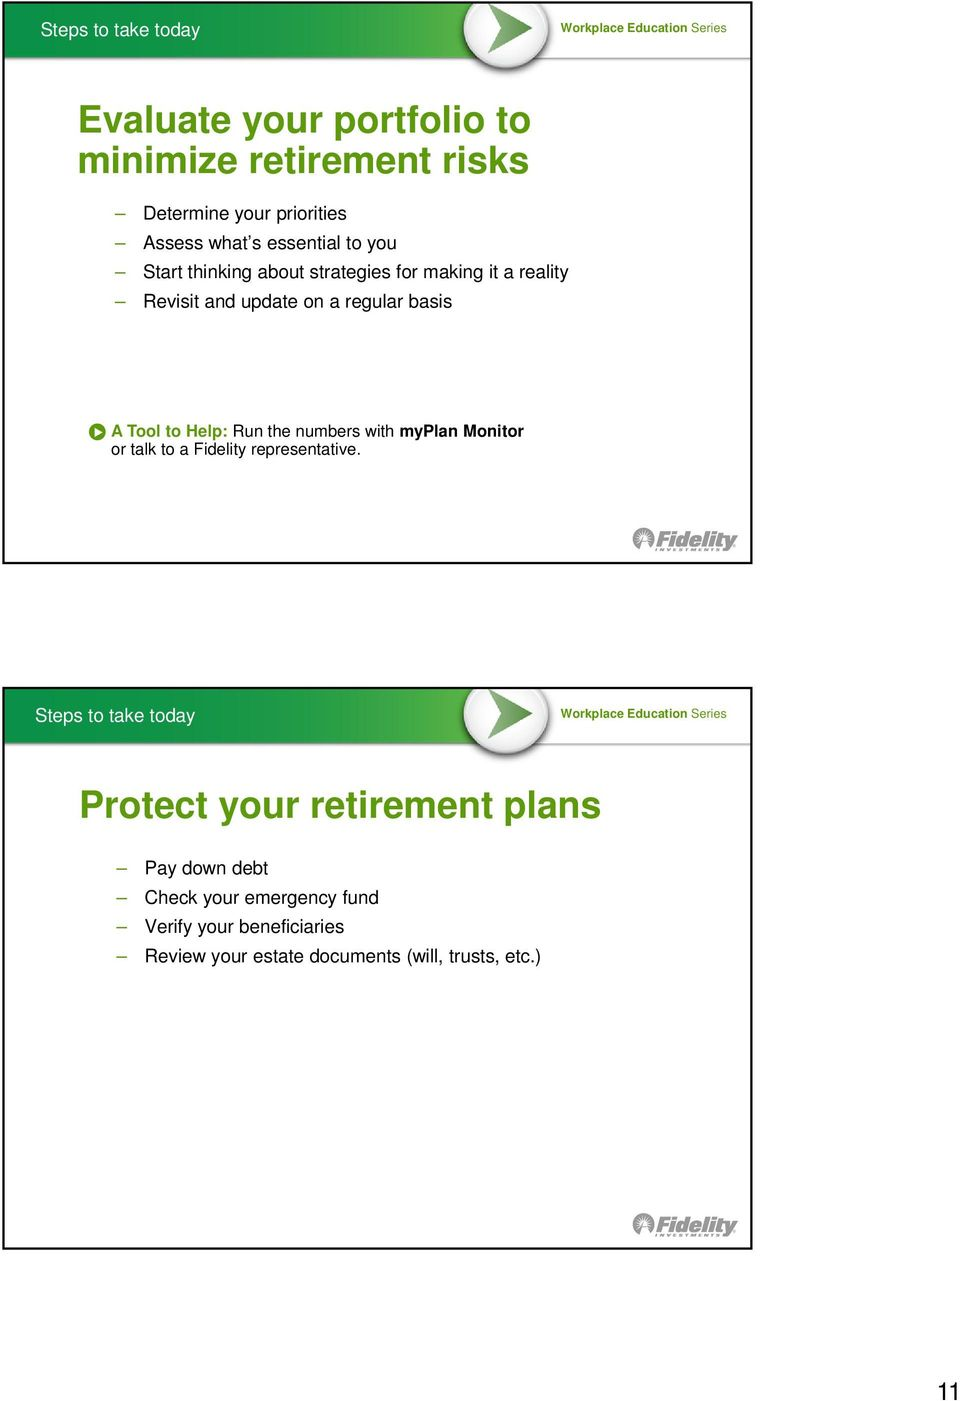 Help: Run the numbers with myplan Monitor or talk to a Fidelity representative.